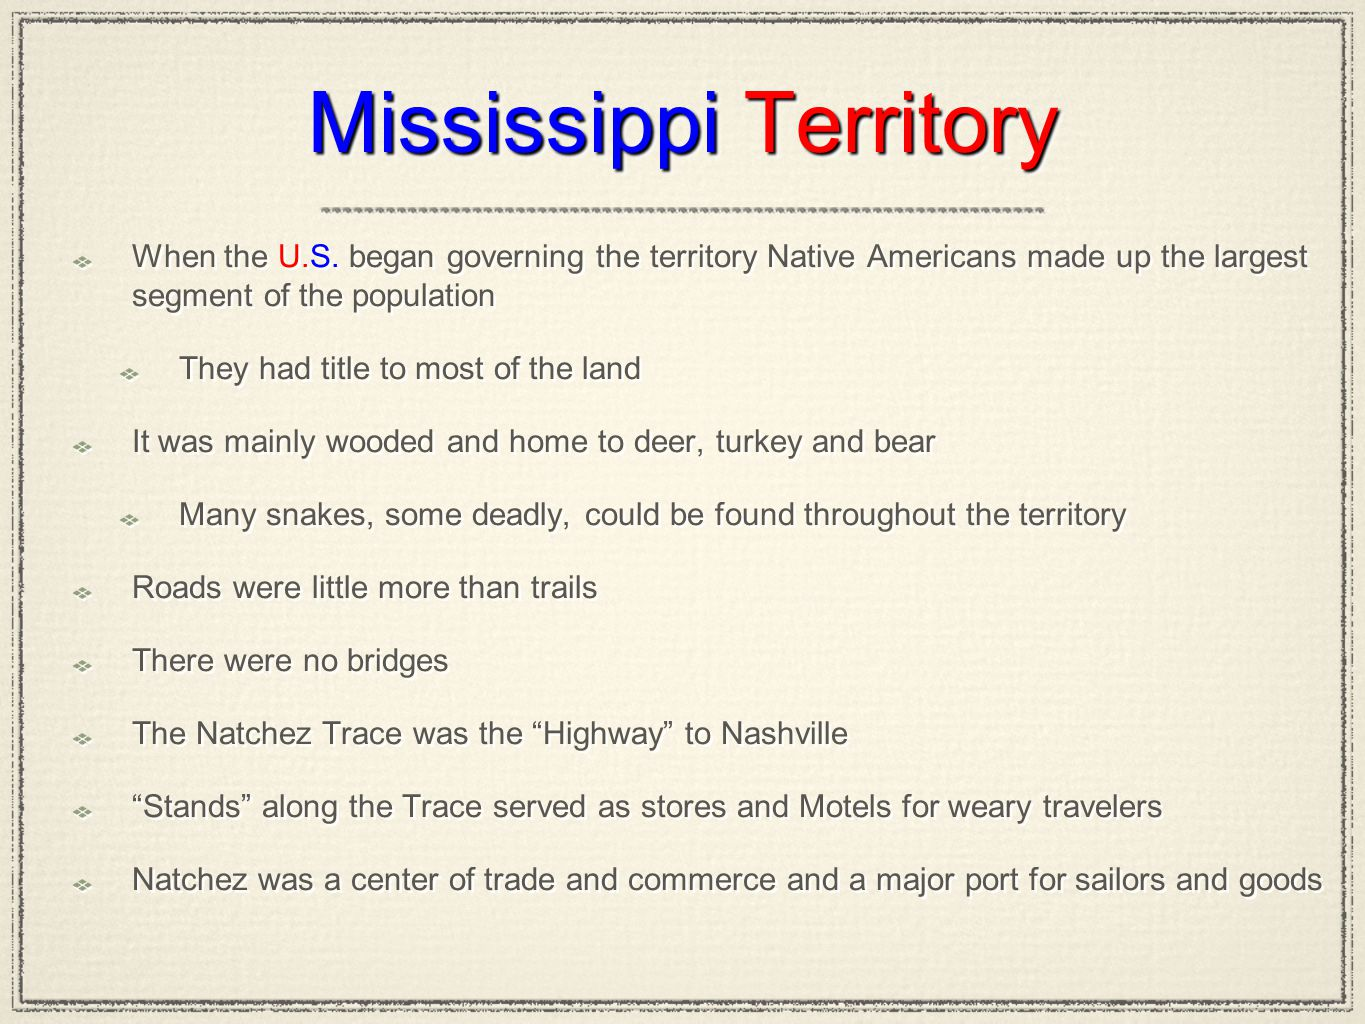 Mississippi Territory When the U.S. began governing the territory Native Americans made up the largest segment of the population They had title to mos